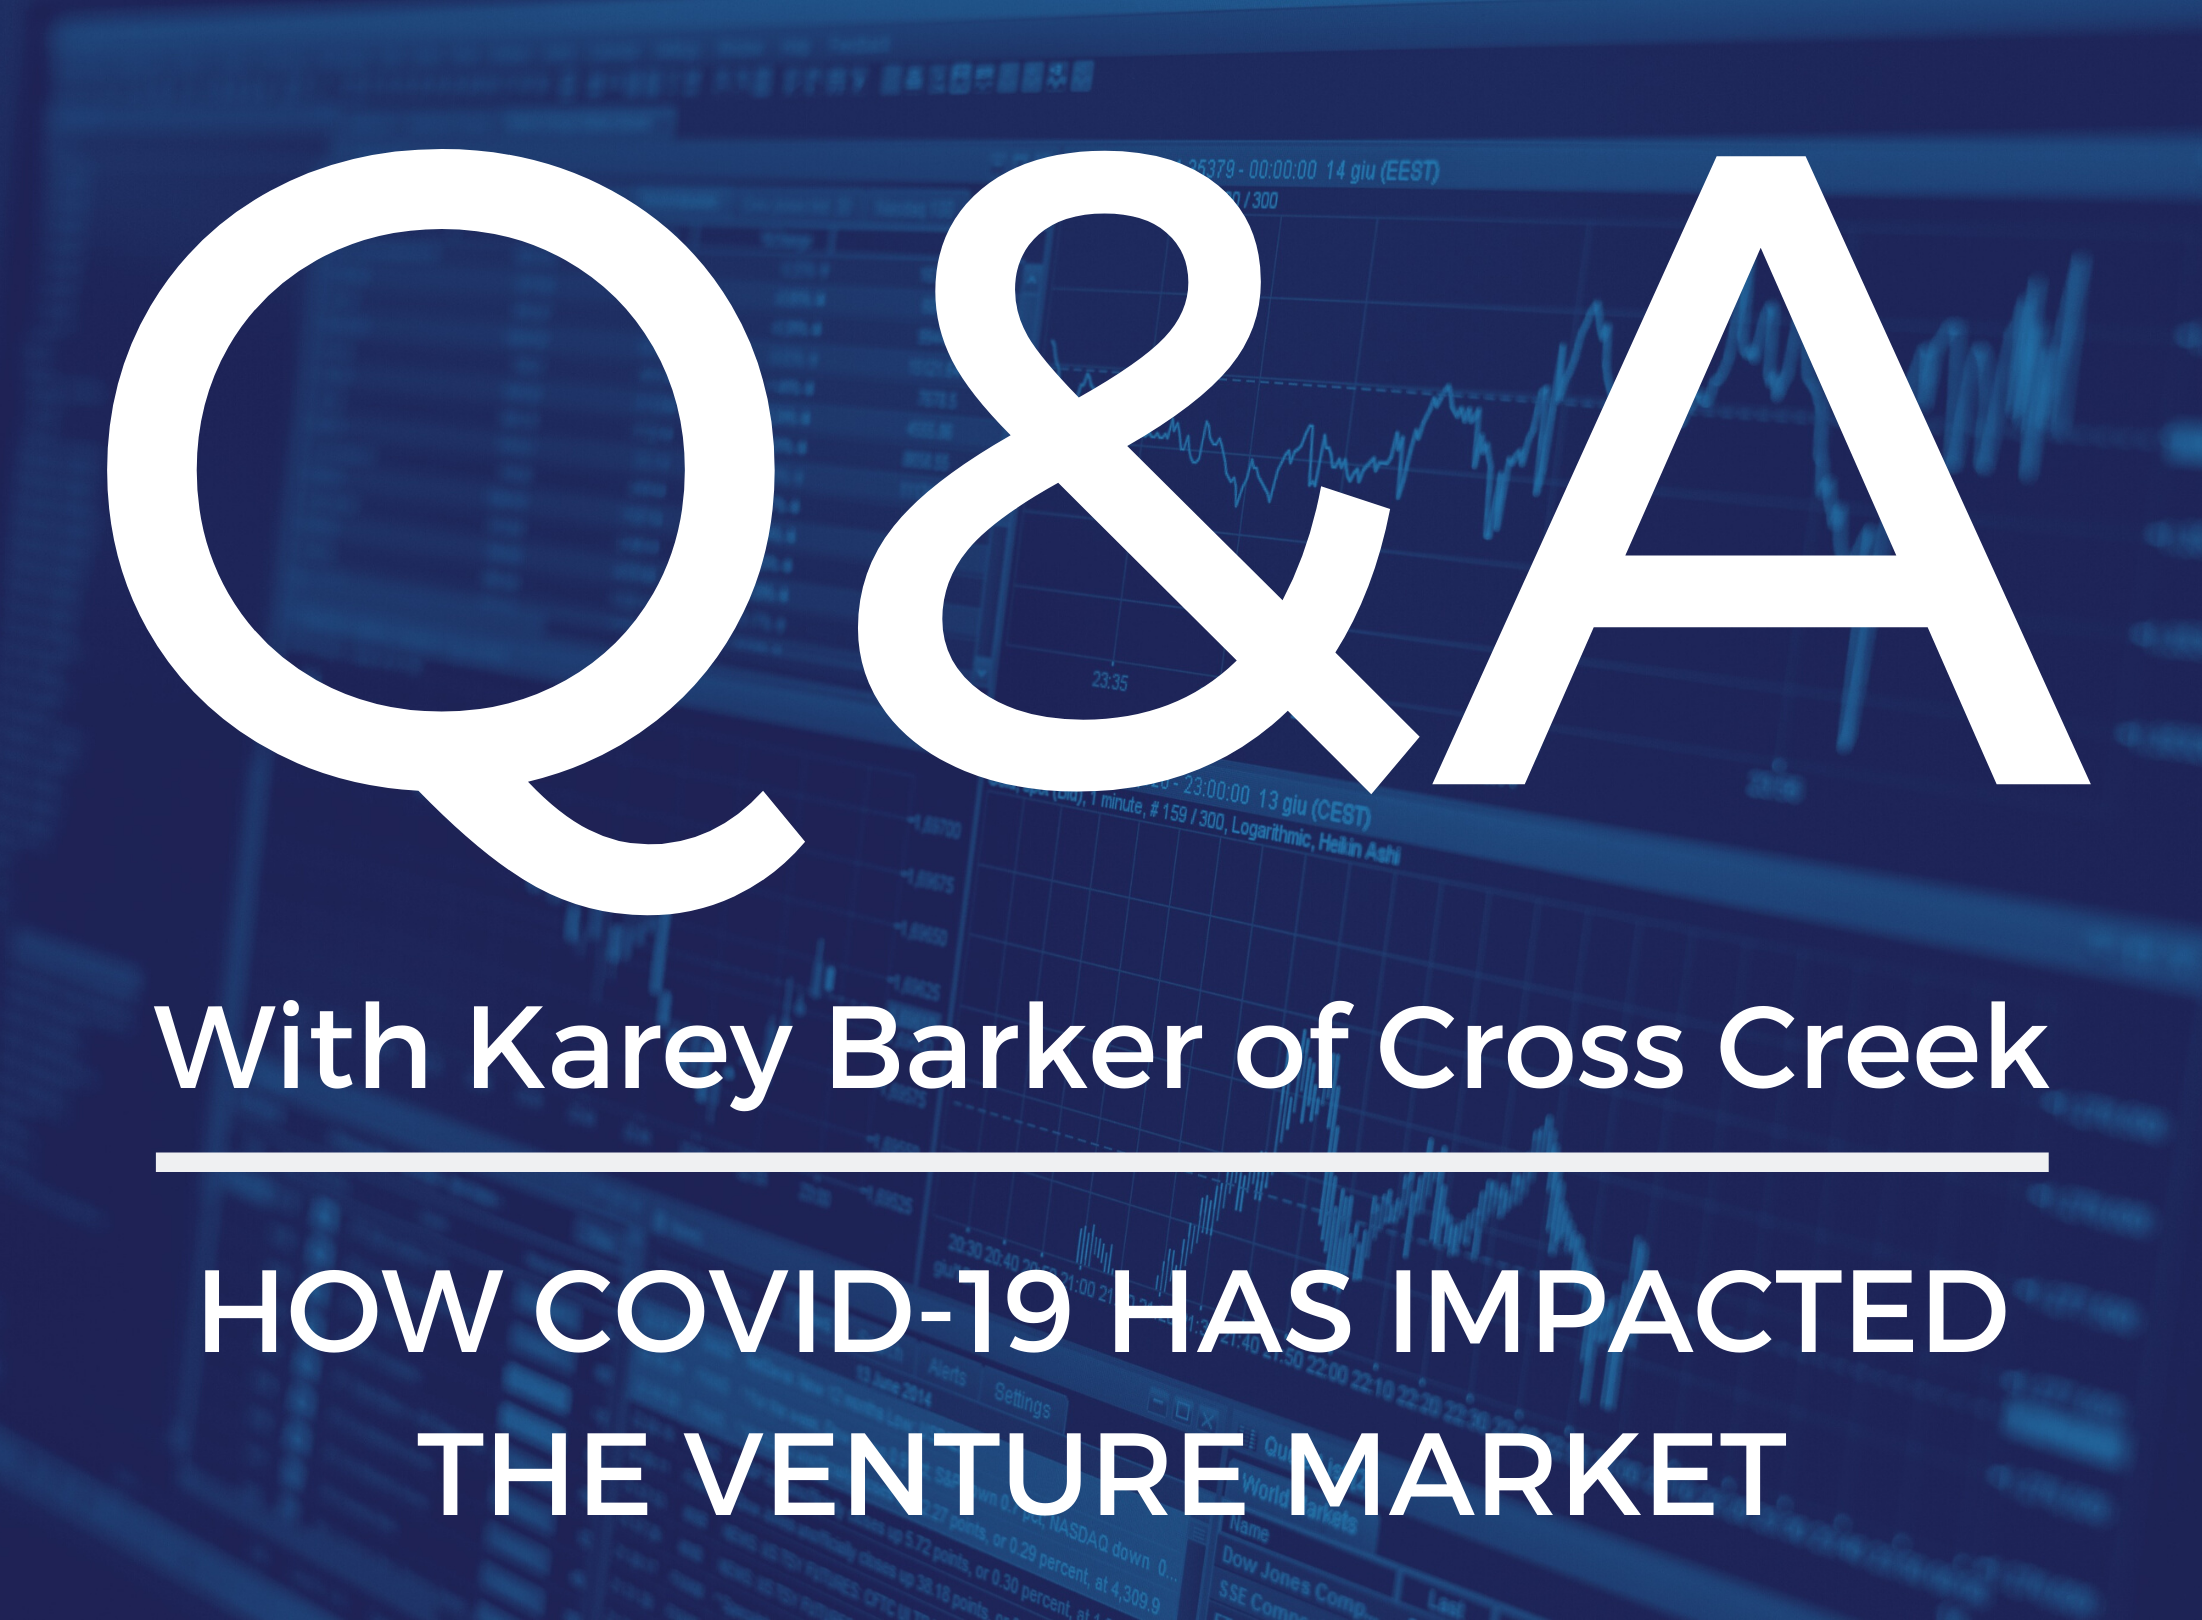 Q&A With With Karey Barker of Cross Creek